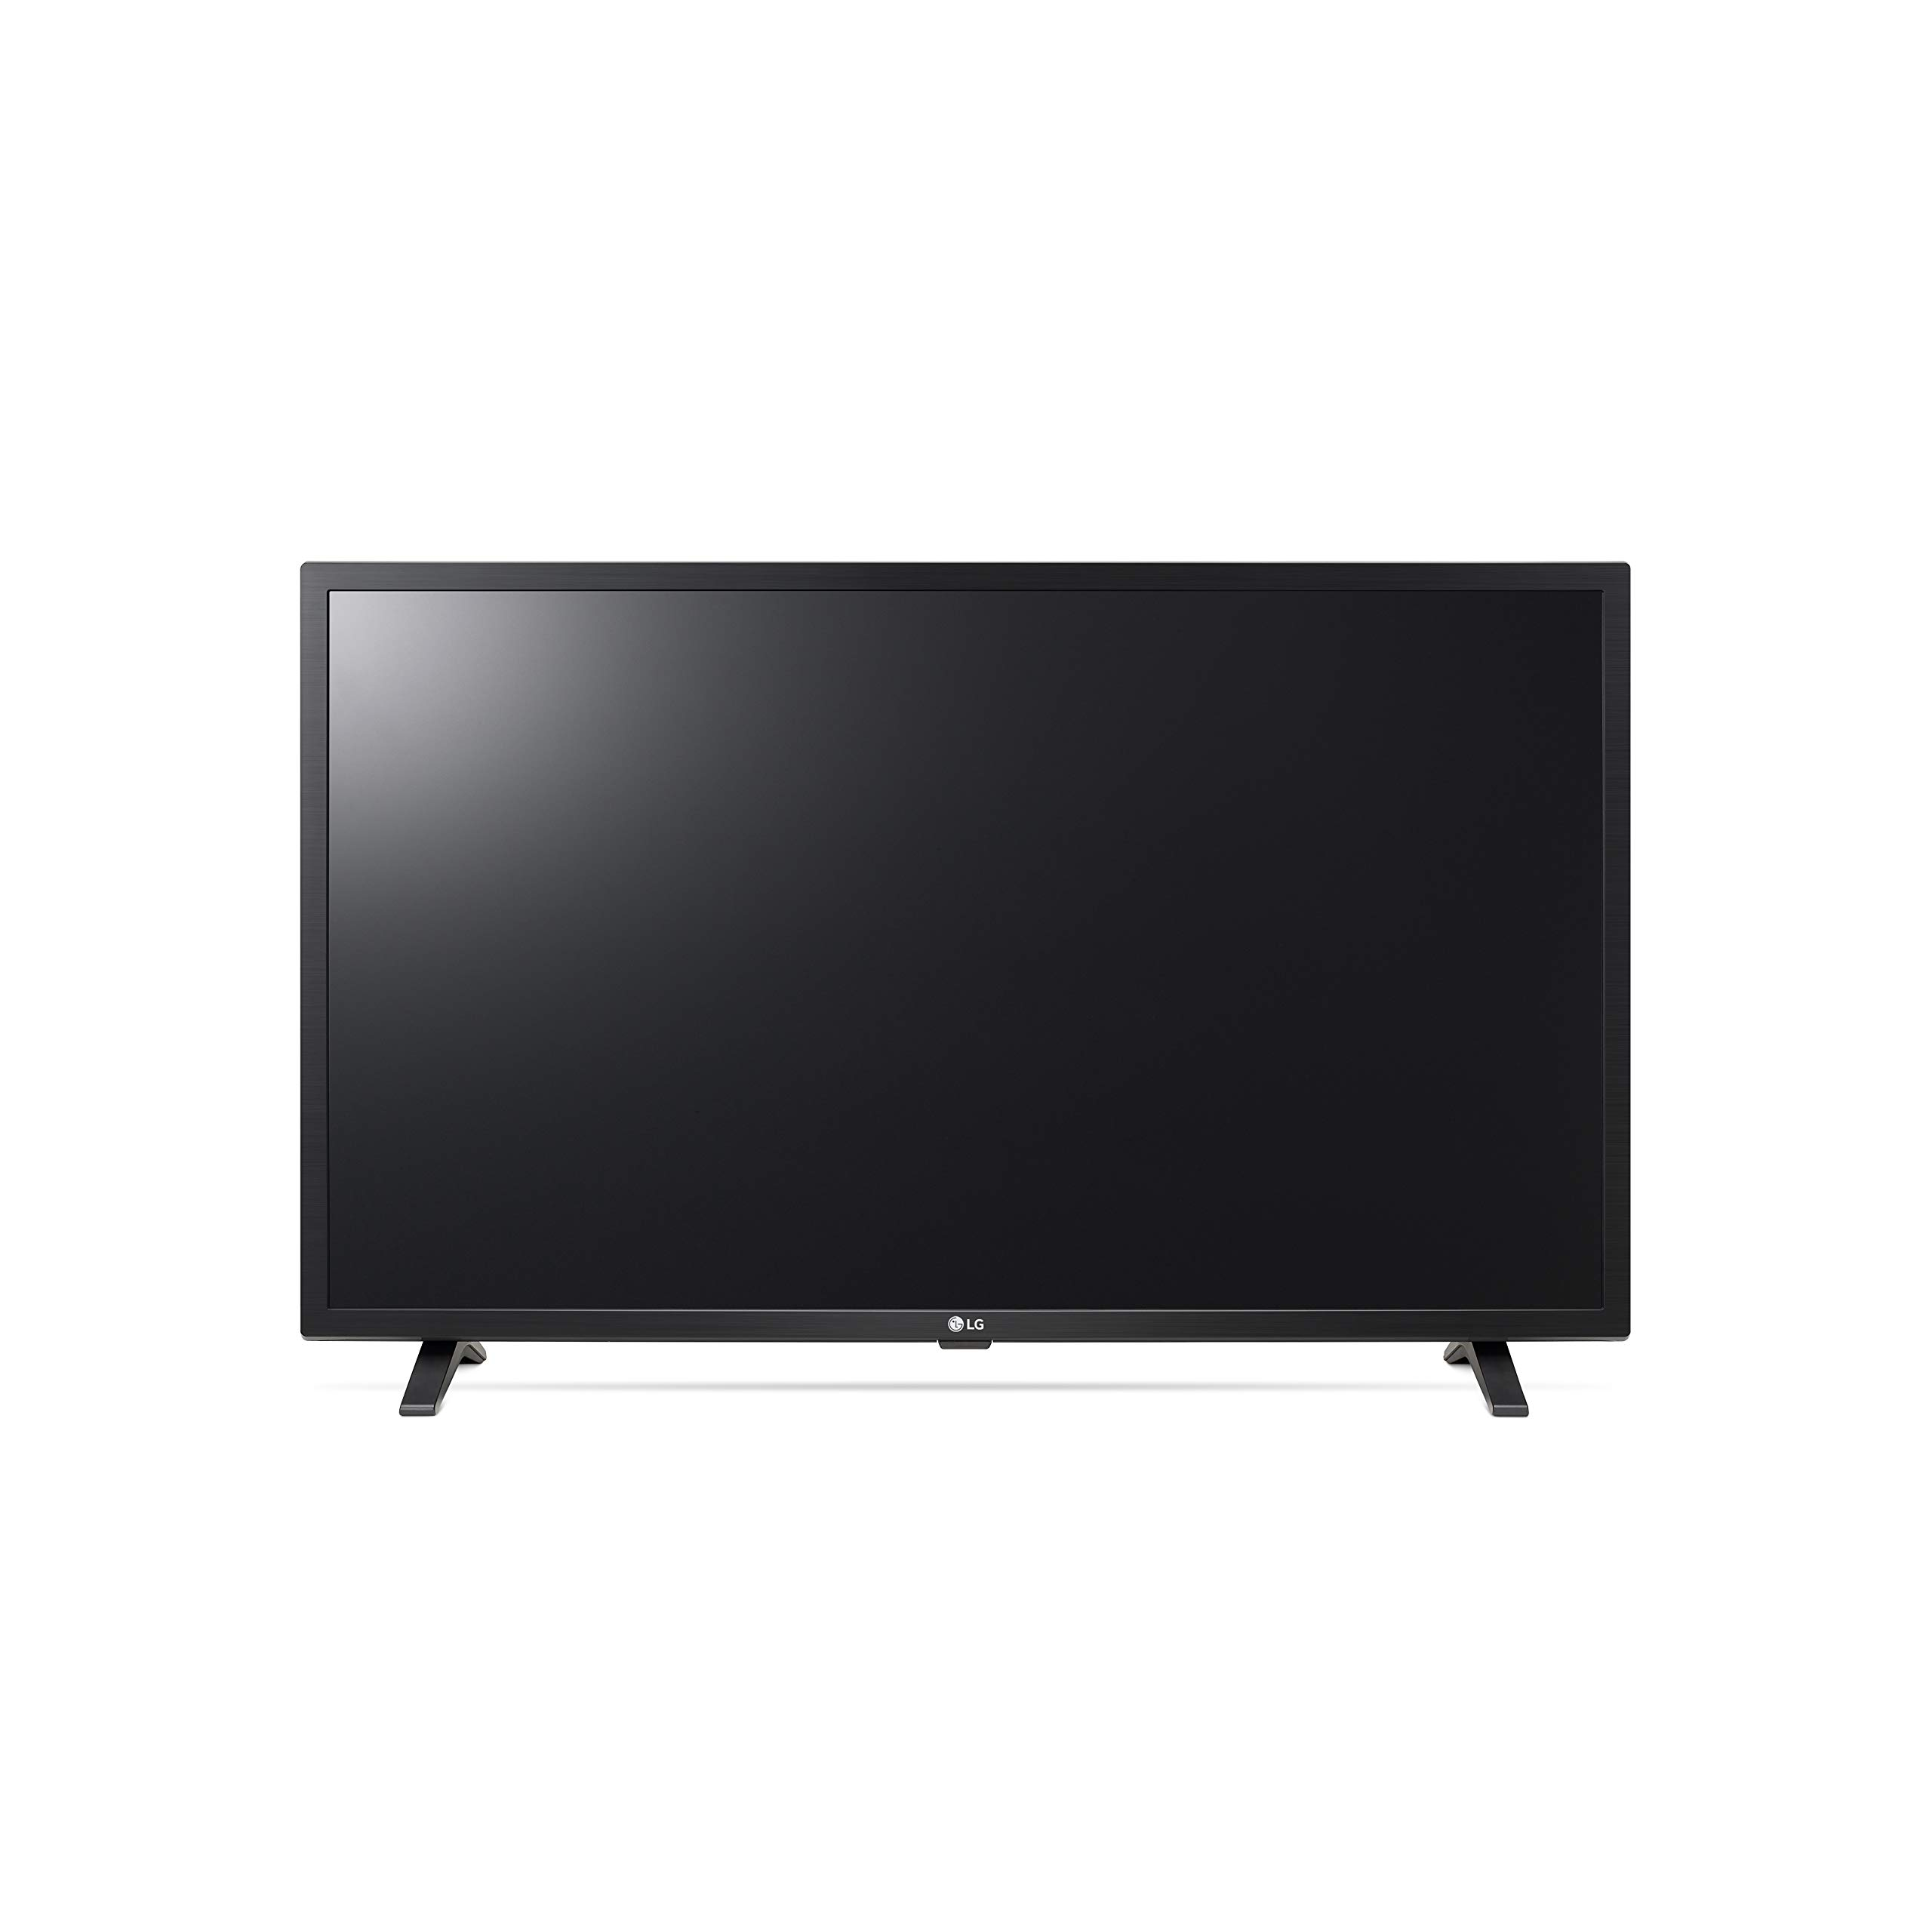 71mXBygVSIL - LG Electronics 32LM630BPLA.AEK 32-Inch HD Ready Smart LED TV with Freeview Play - Ceramic Black Colour (2019 model)